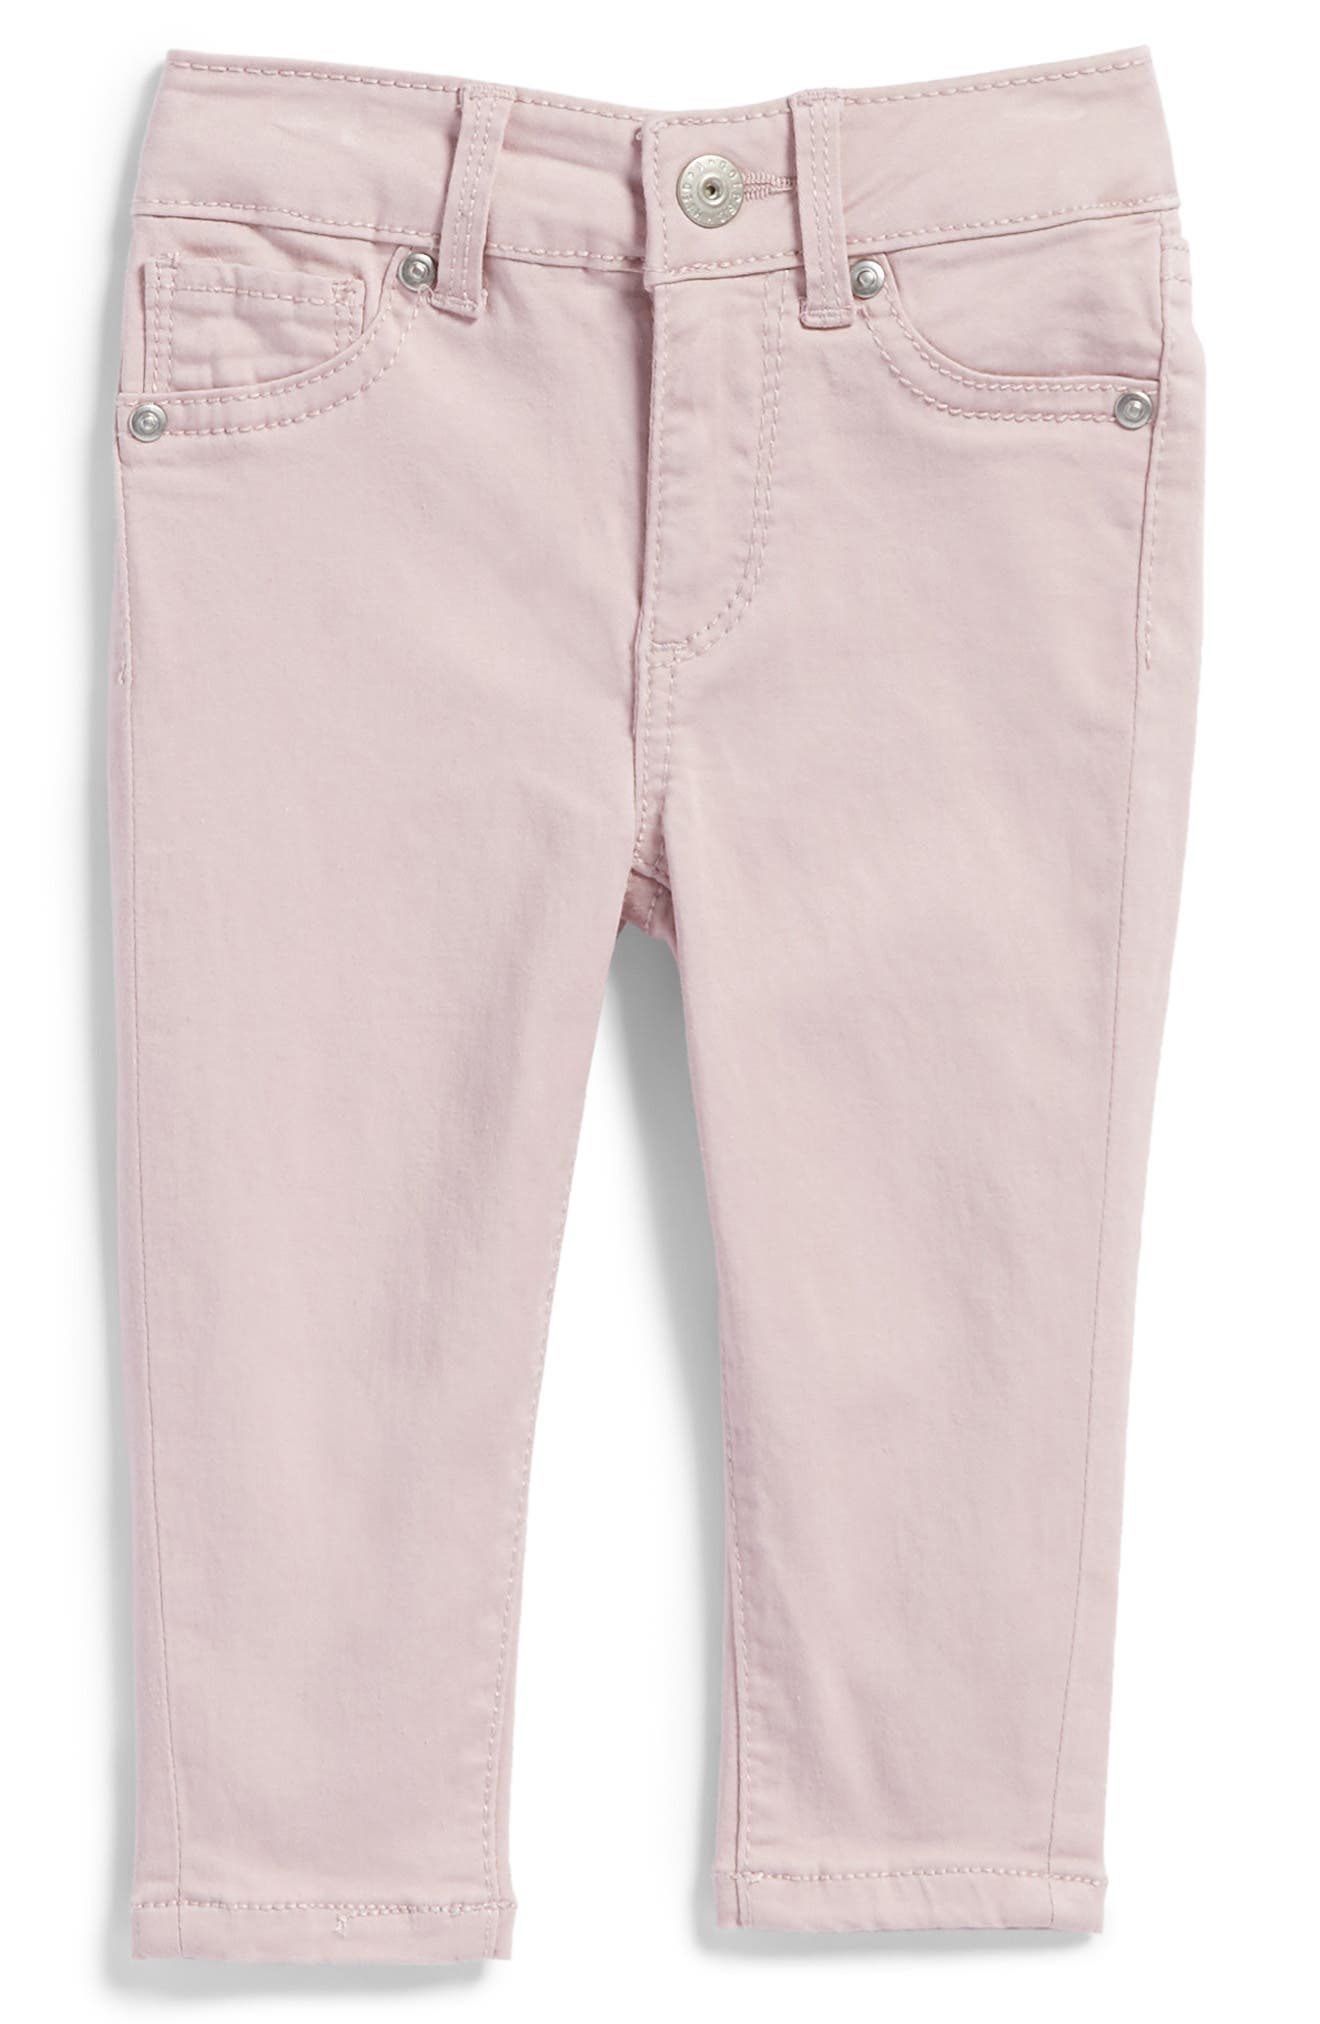 Twiggy Ankle Skinny Jeans,                             Main thumbnail 1, color,